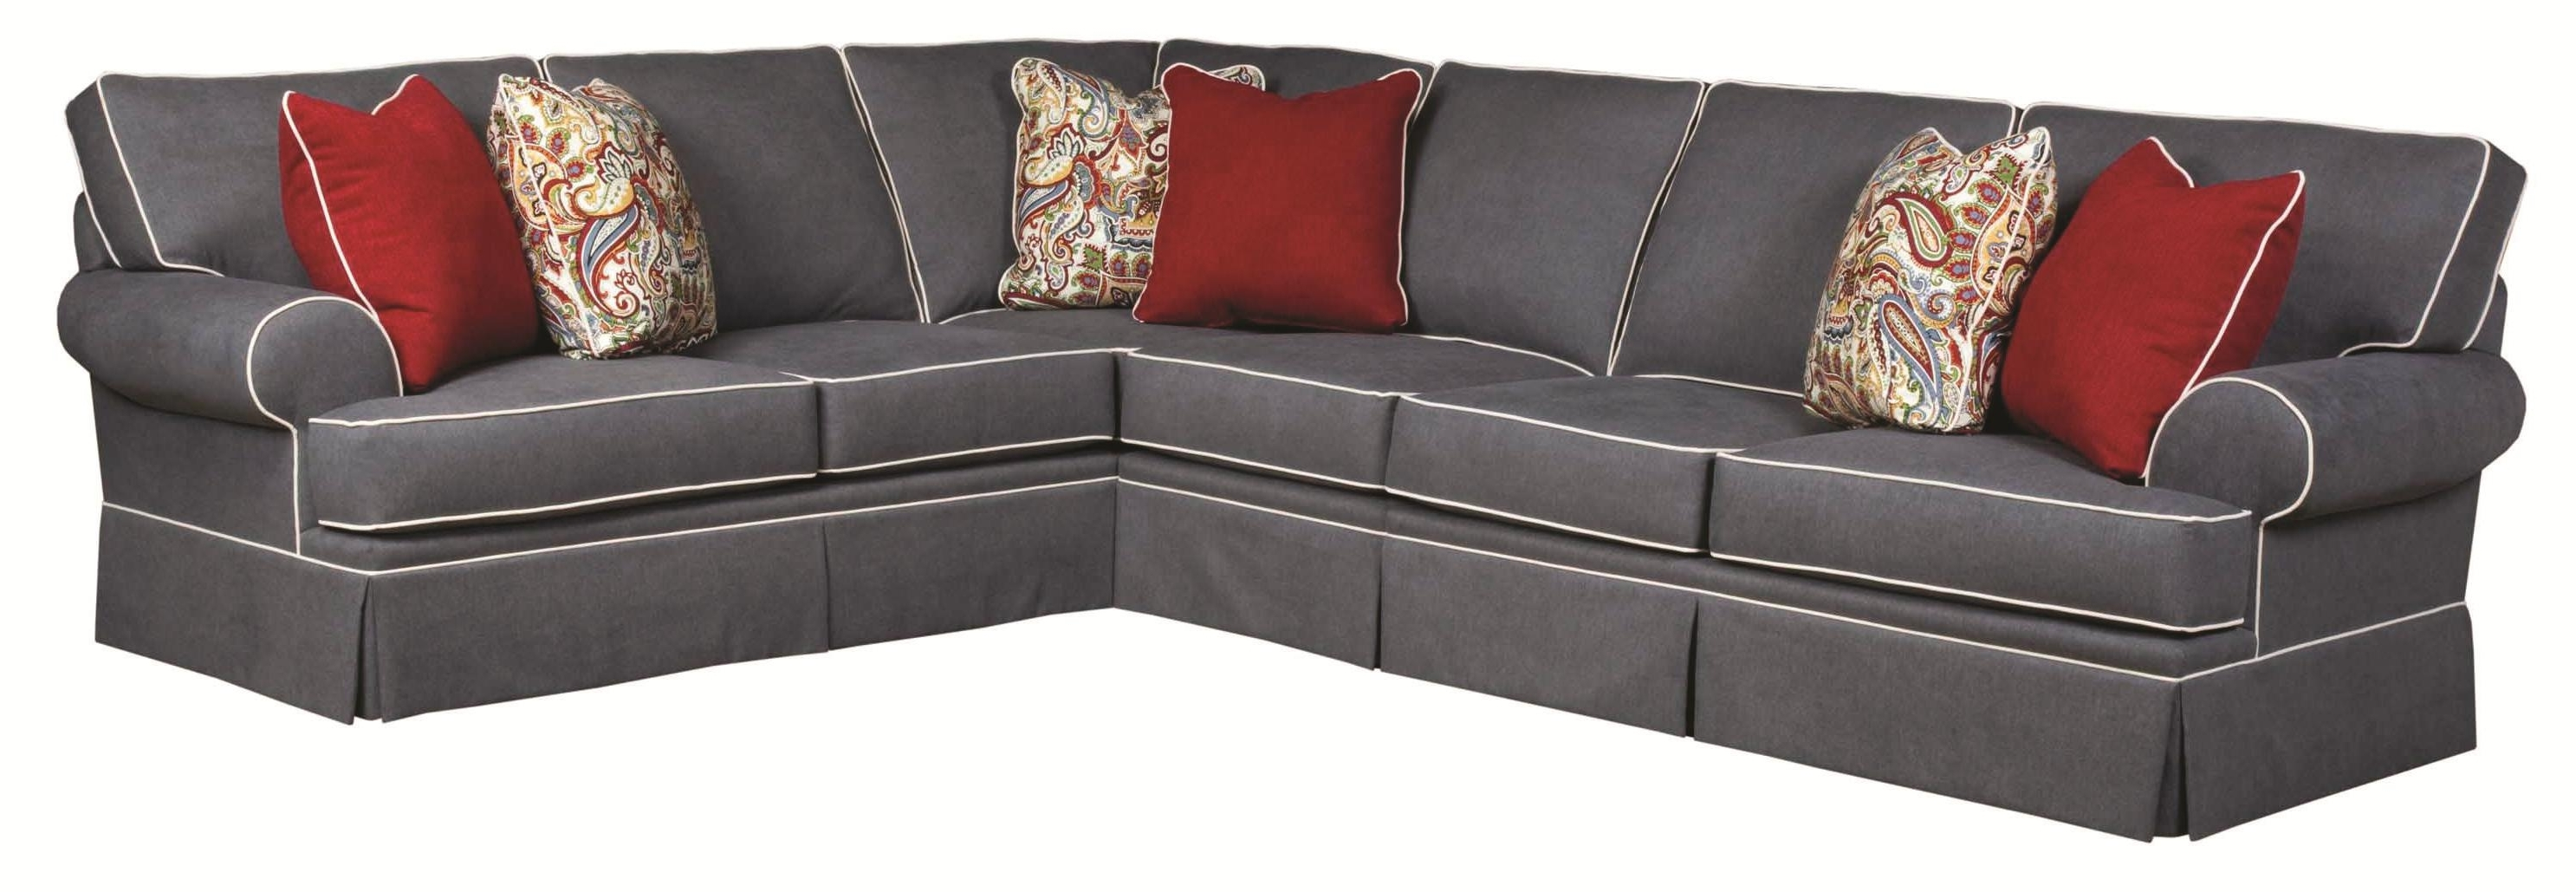 Well Liked Broyhill Sectional Sofas With Regard To Broyhill Furniture Emily Traditional 3 Piece Sectional Sofa With (View 6 of 15)